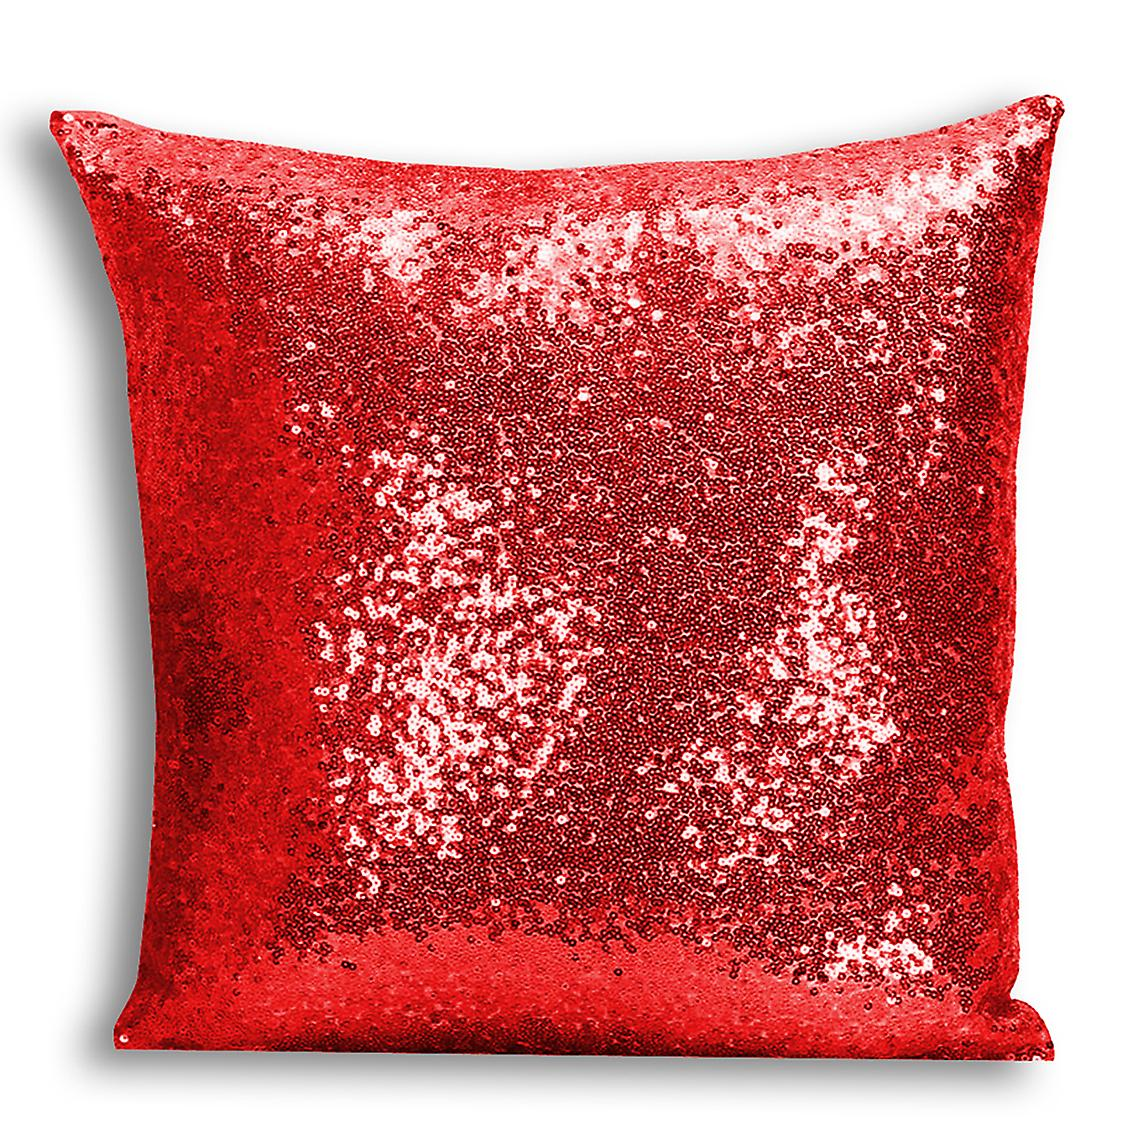 8 For Sequin tronixsUnicorn CushionPillow I Decor With Printed Cover Home Design Inserted Red dxEQrCBoWe